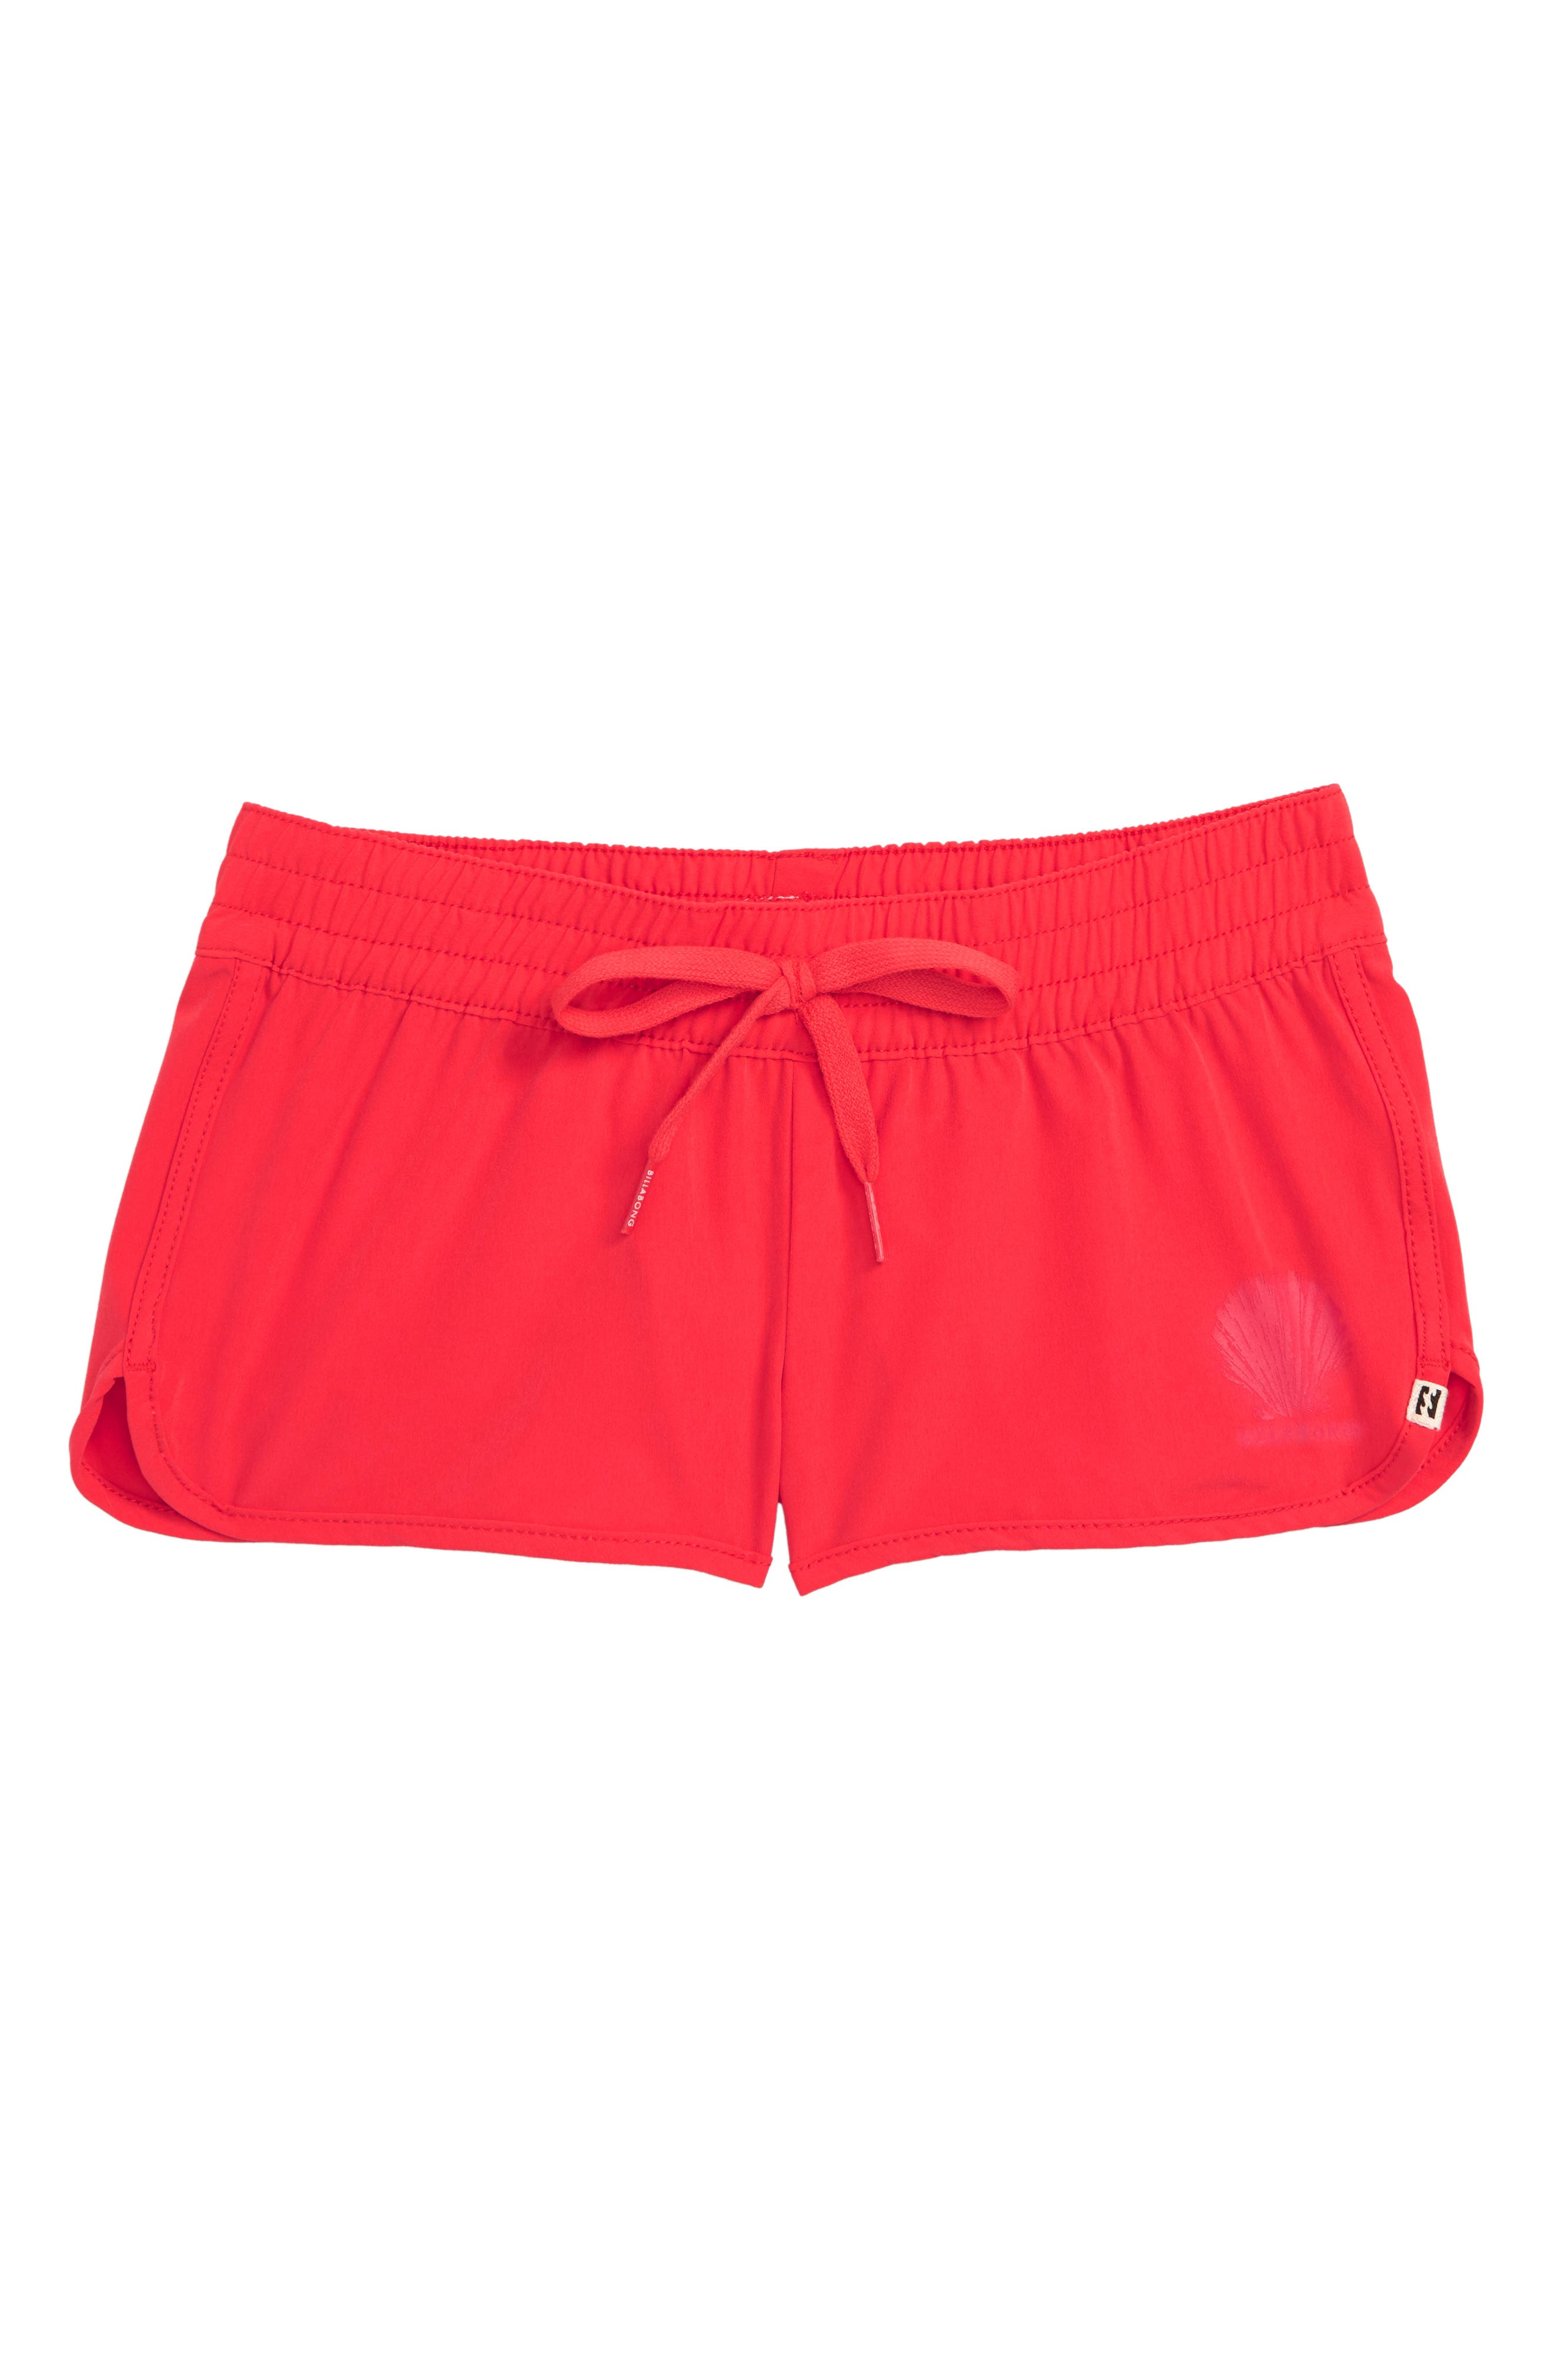 Sol Searcher Volley Shorts,                             Main thumbnail 1, color,                             650